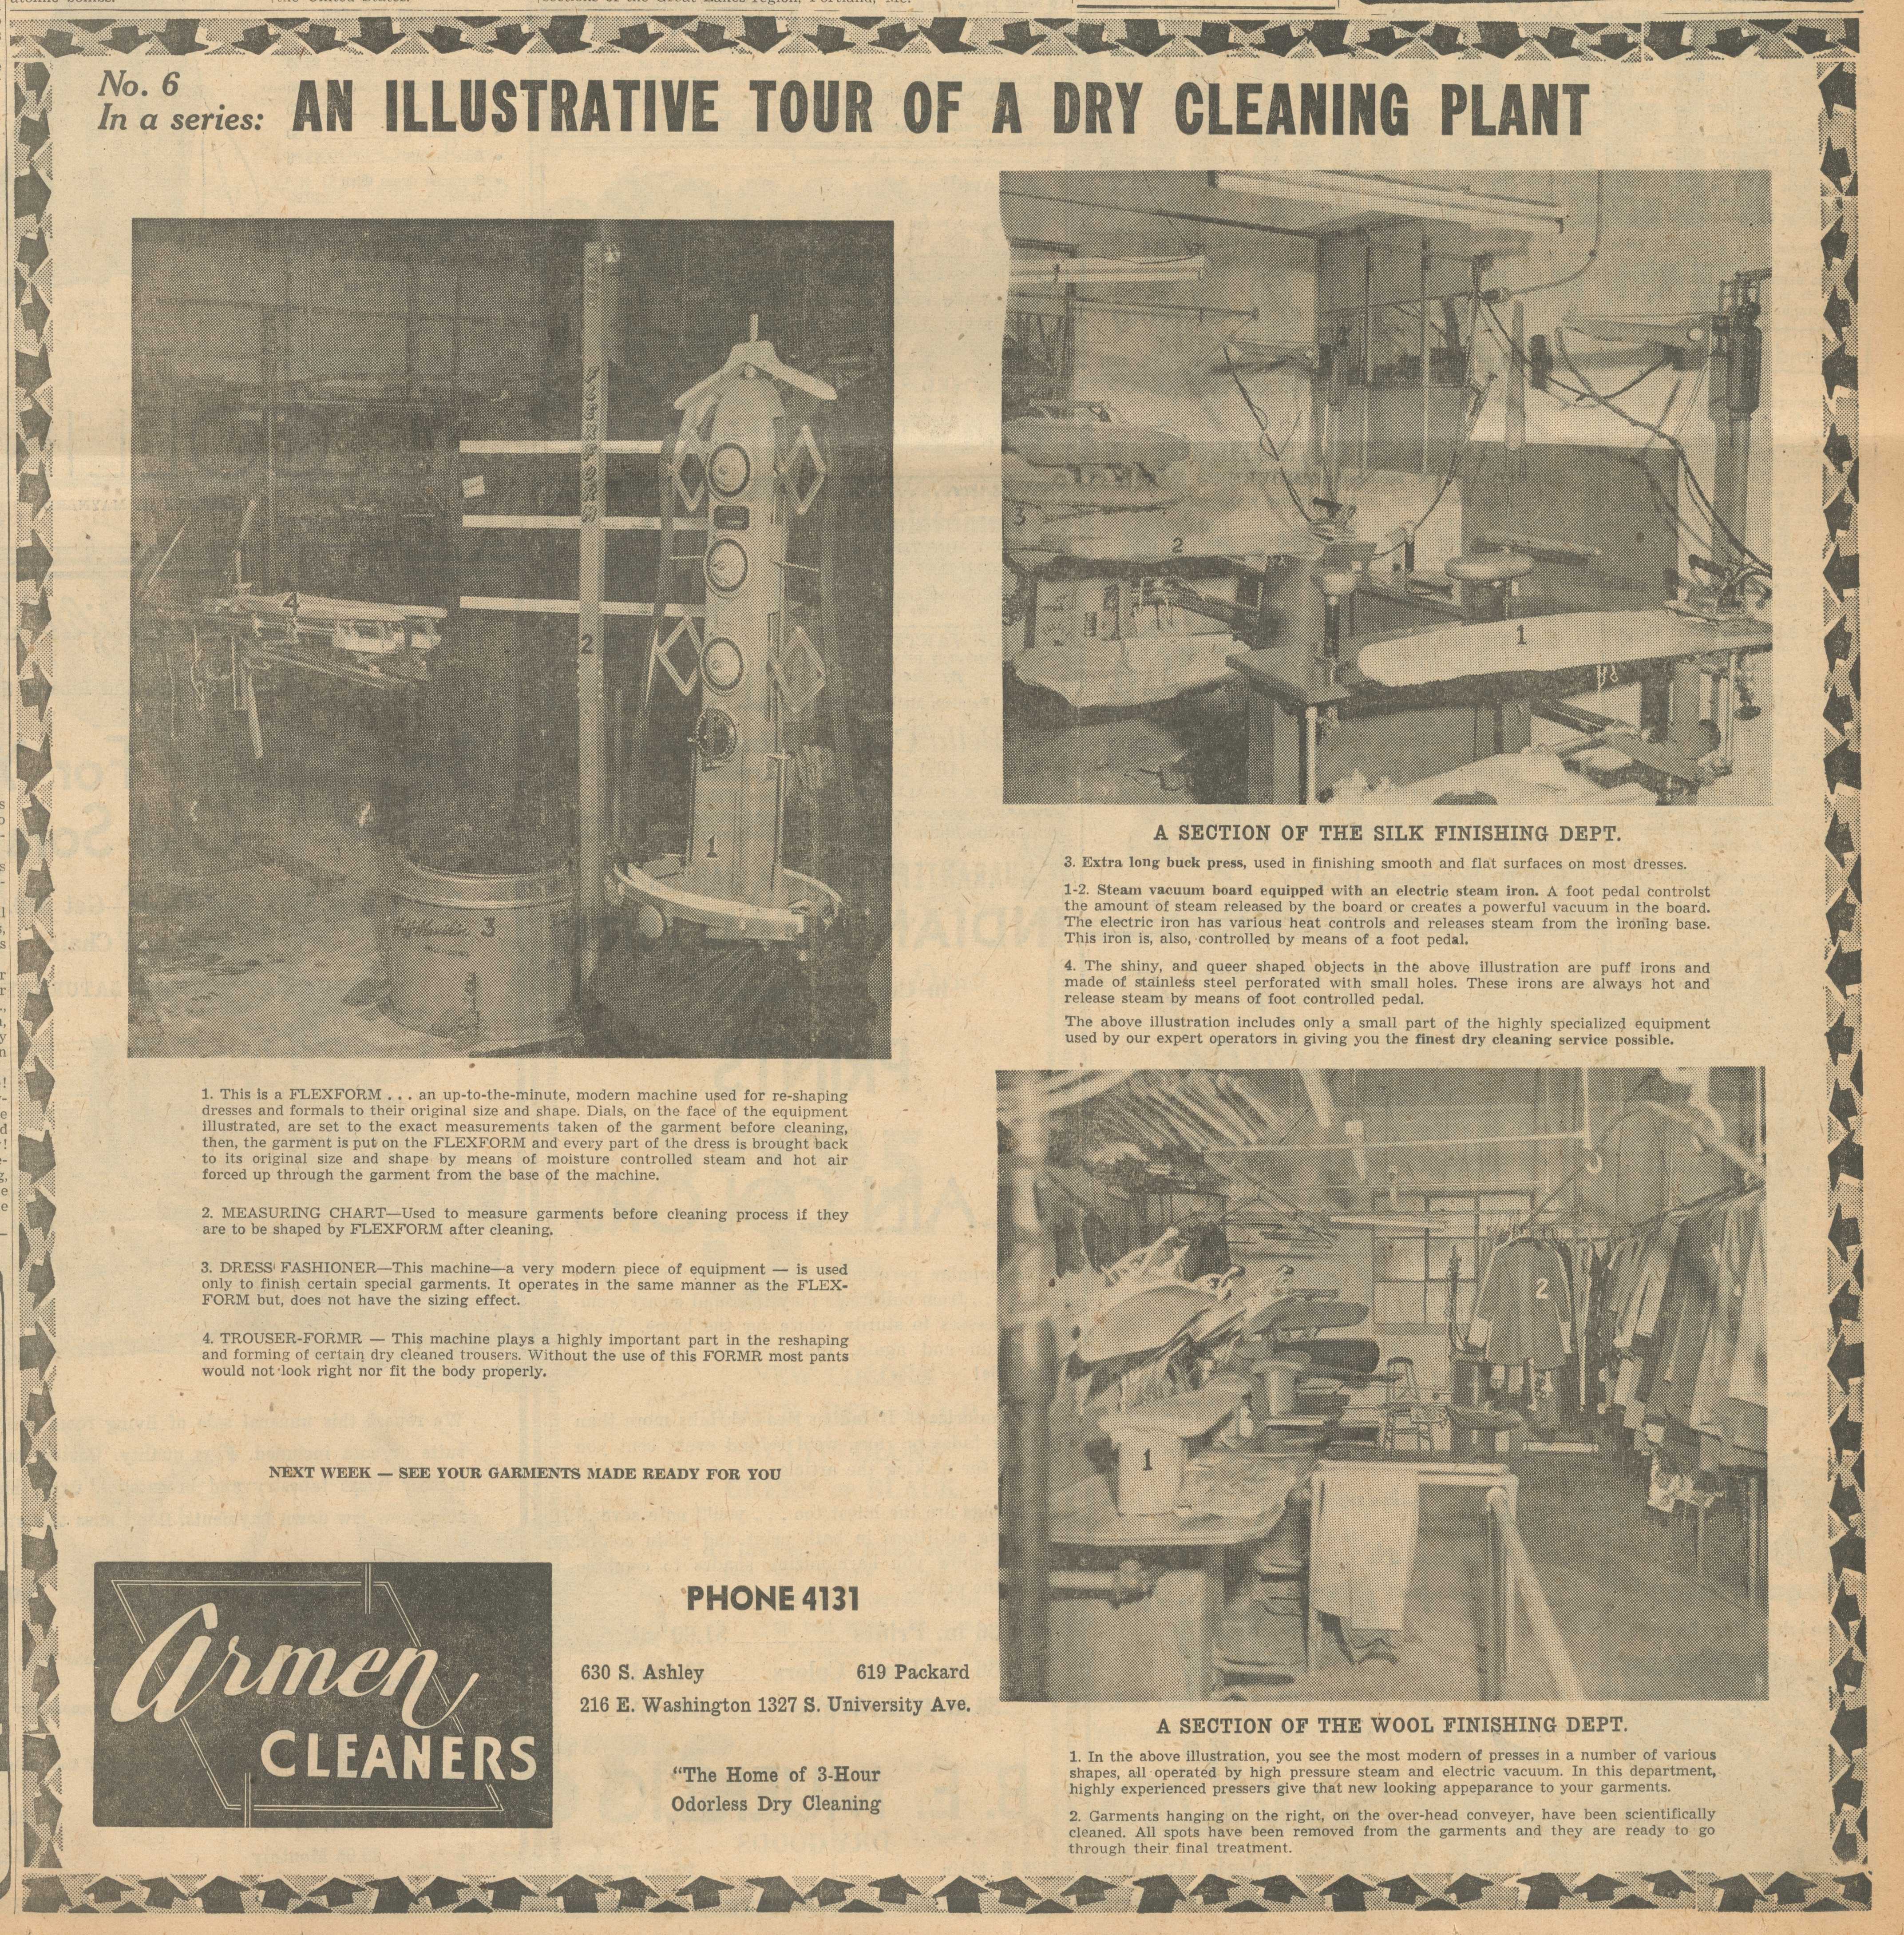 An Illustrative Tour Of A Dry Cleaning Plant, No  6 - Armen